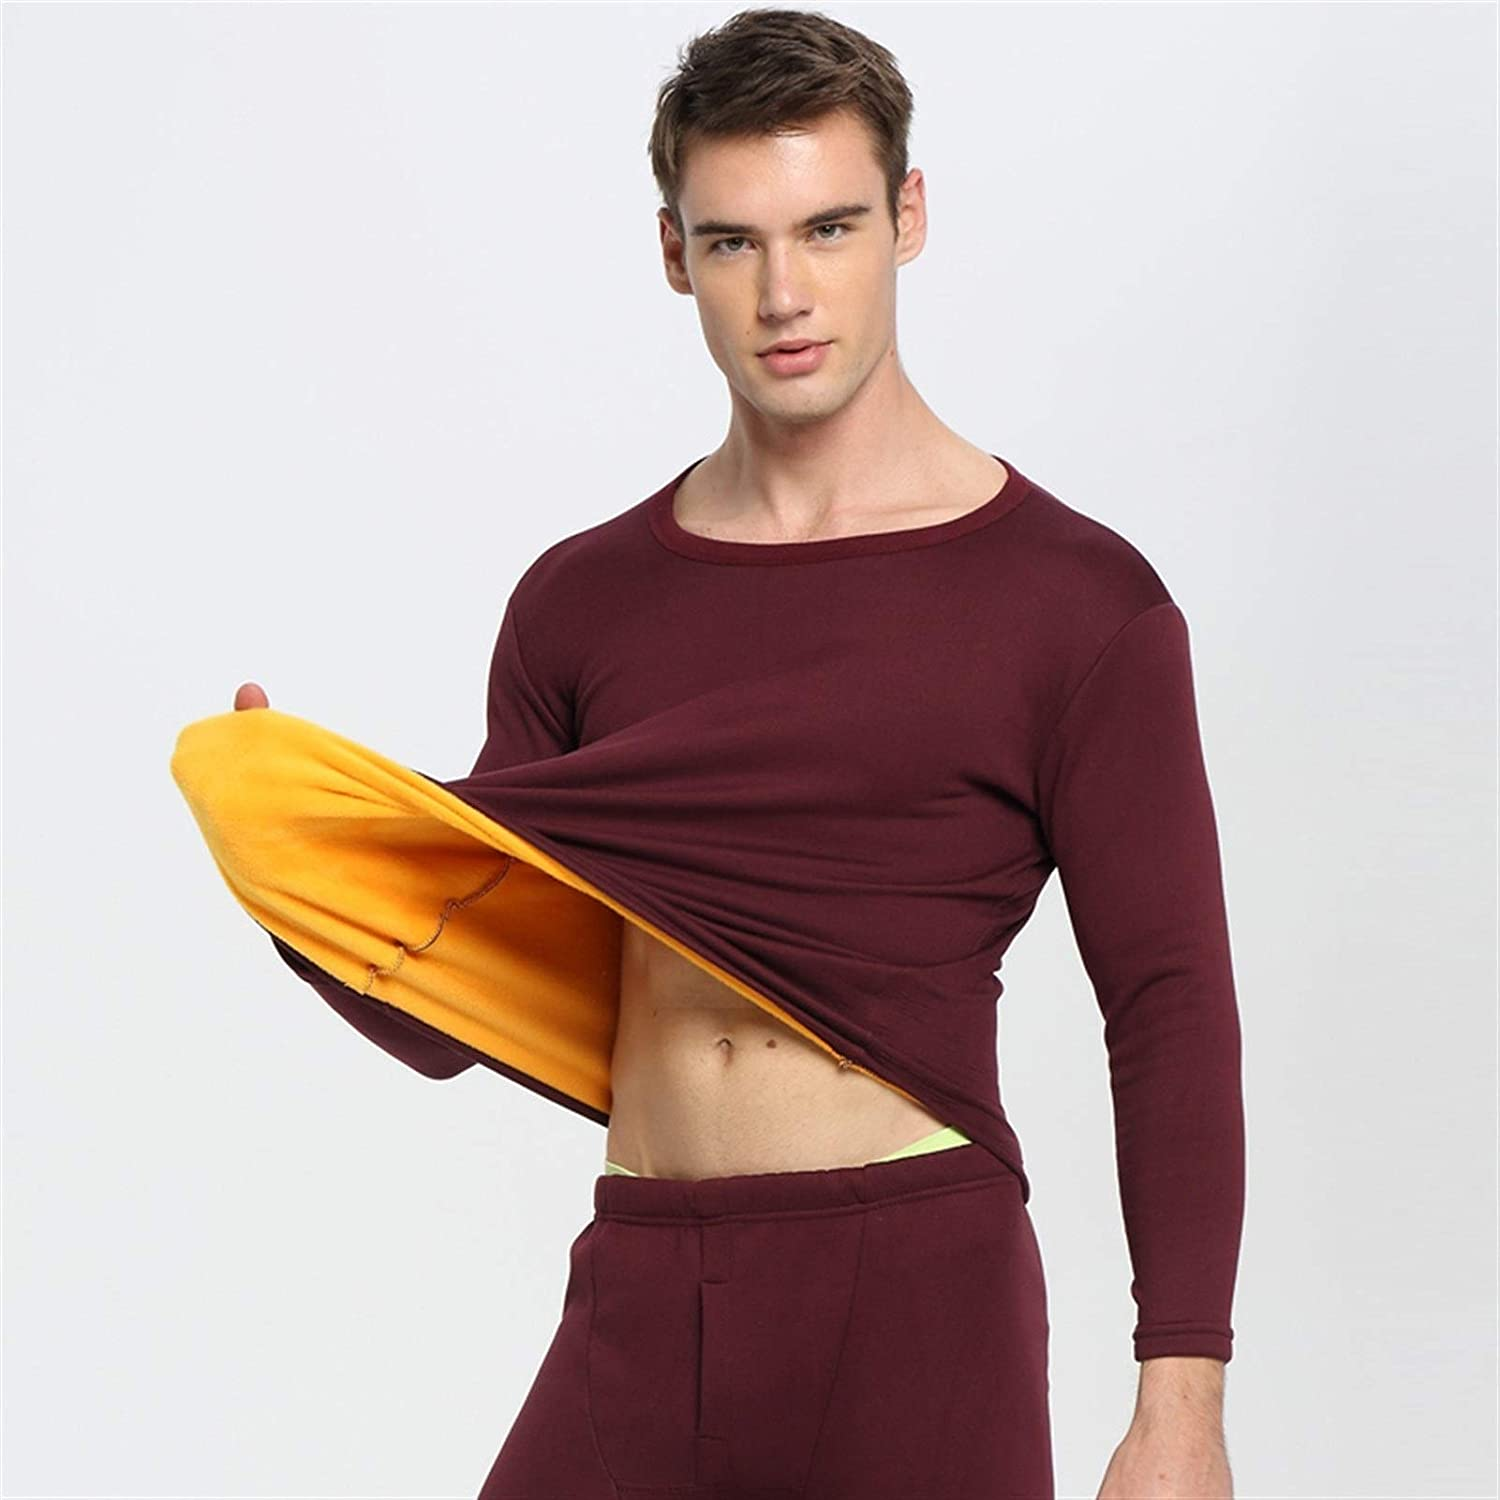 ZHANGZEHONG Thermal Underwear Men Winter Women Long Johns Sets Fleece Keep Warm in Cold Weather Size L to 6XL (Color : WineRed, Size : XXXXXX-Large)